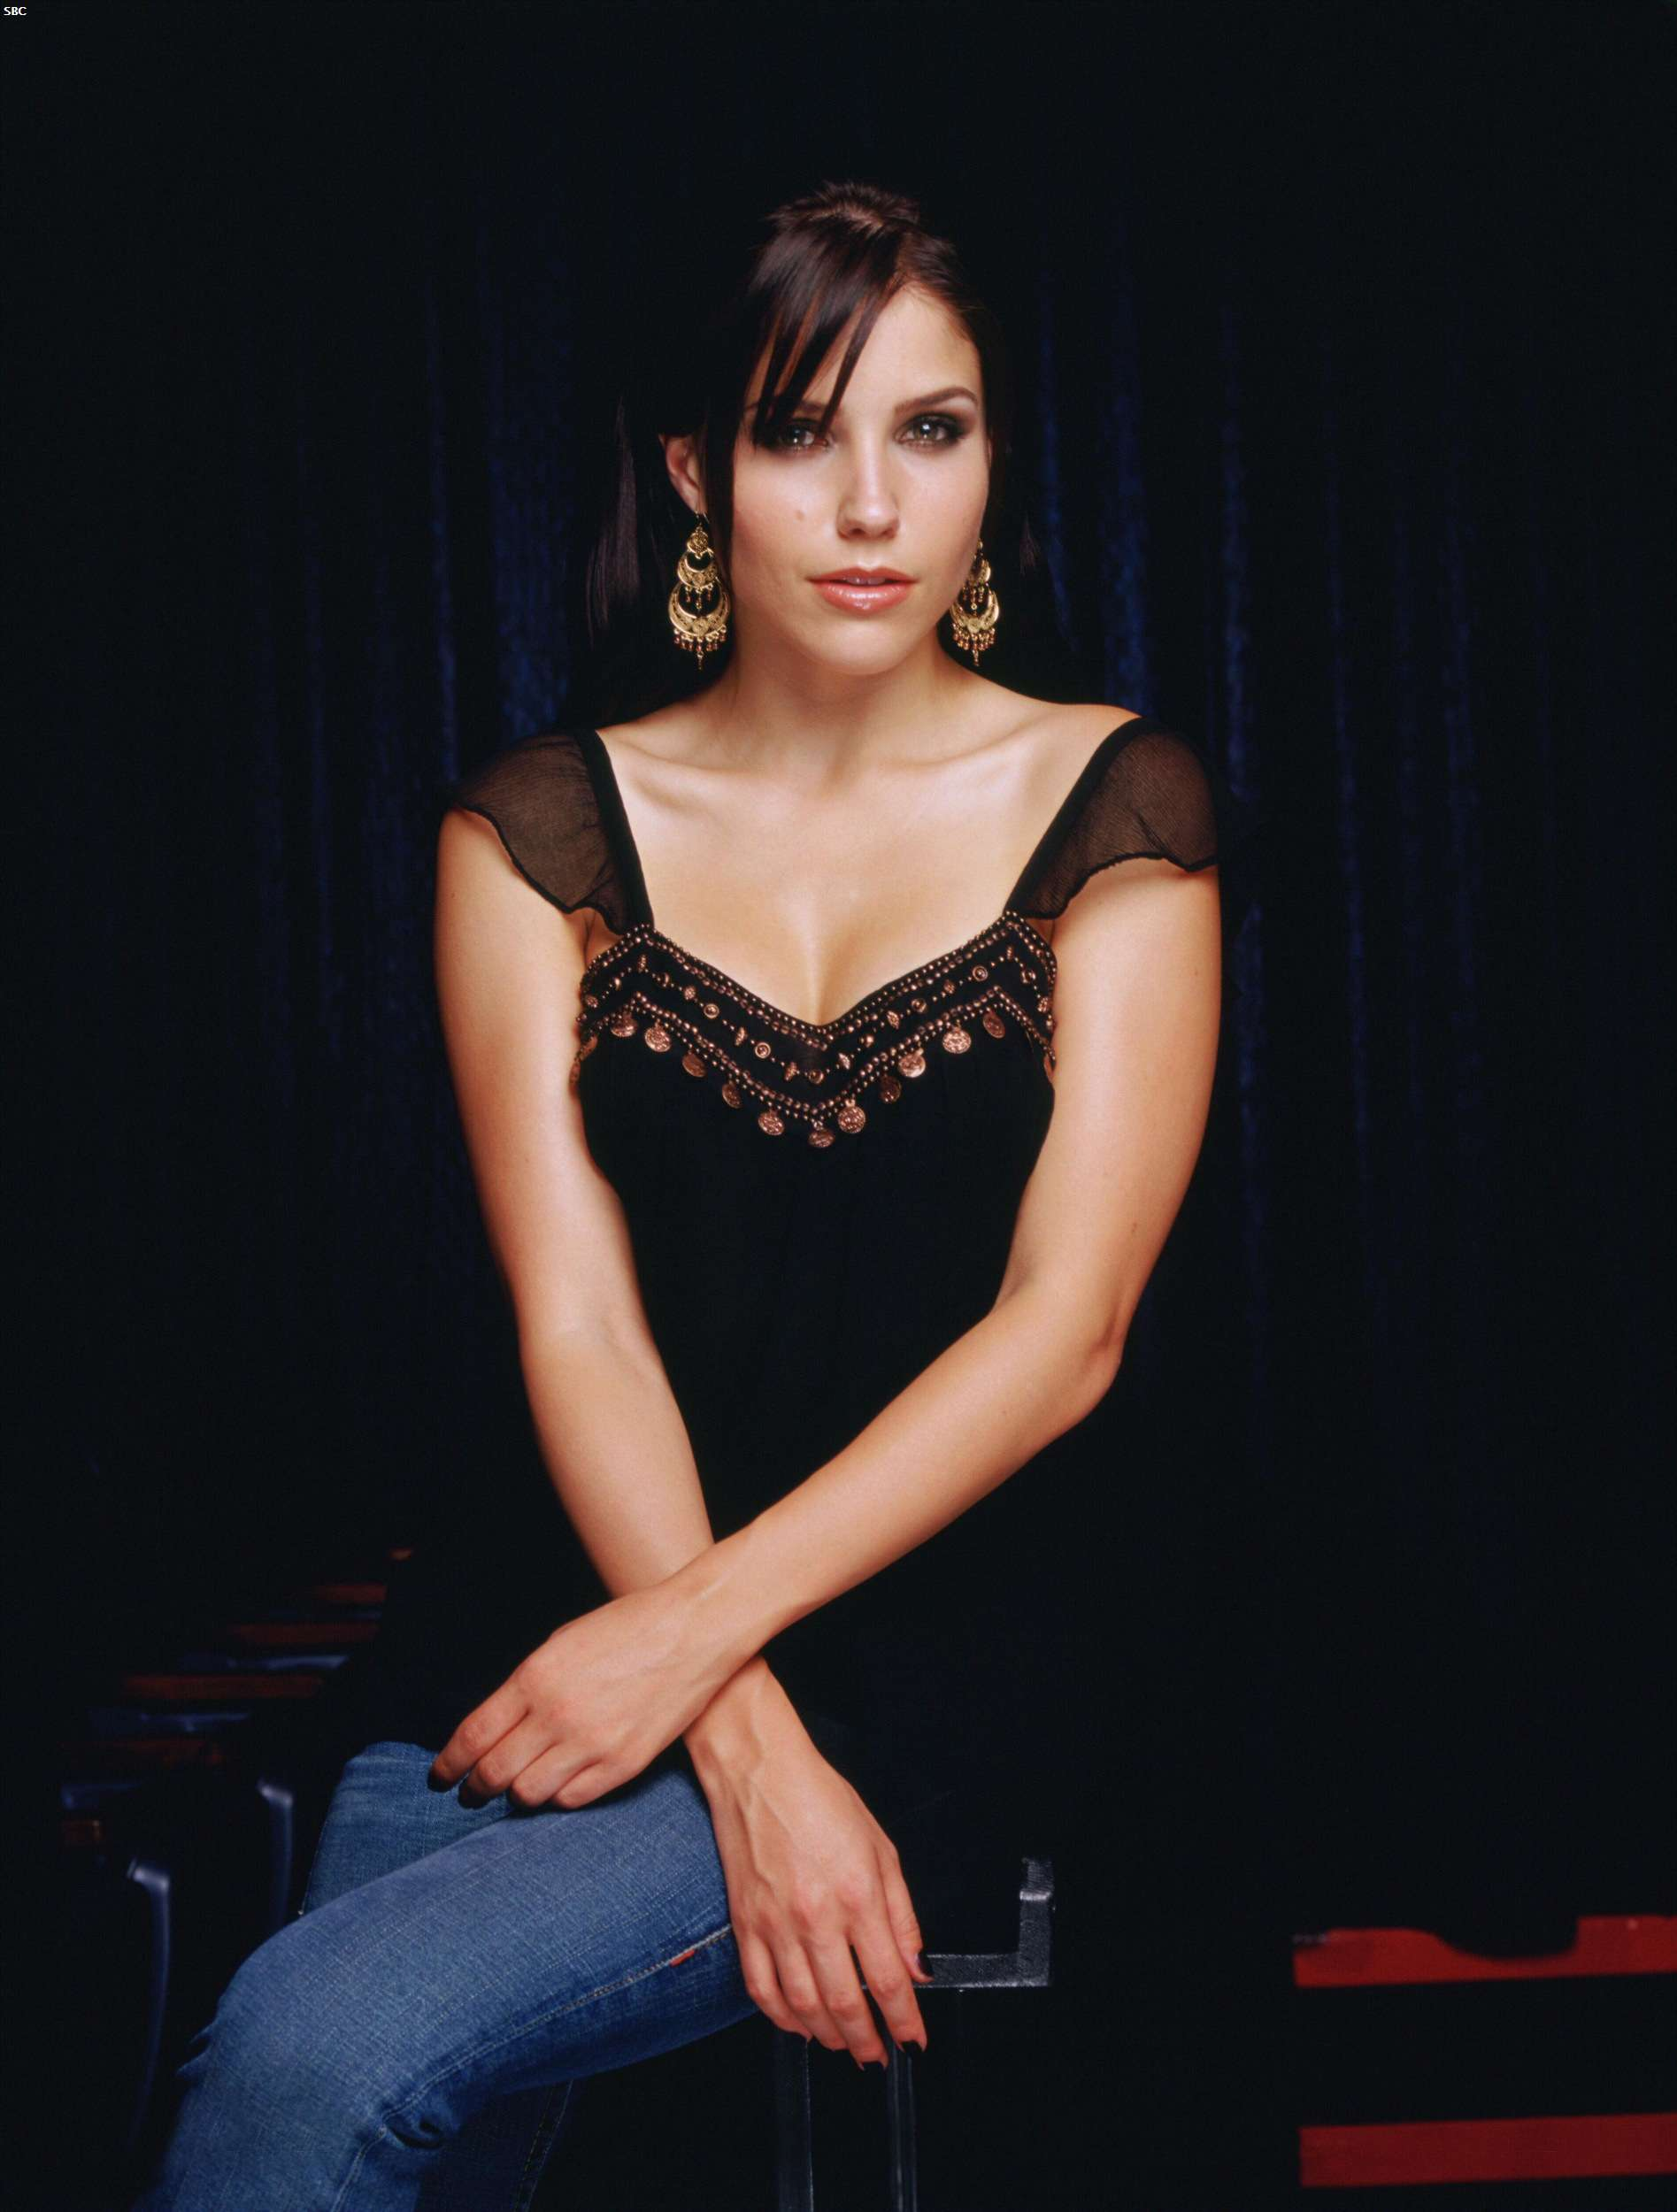 40436_Sophia_Bush_One_Tree_Hill_Promoshooting_005_123_463lo.jpg